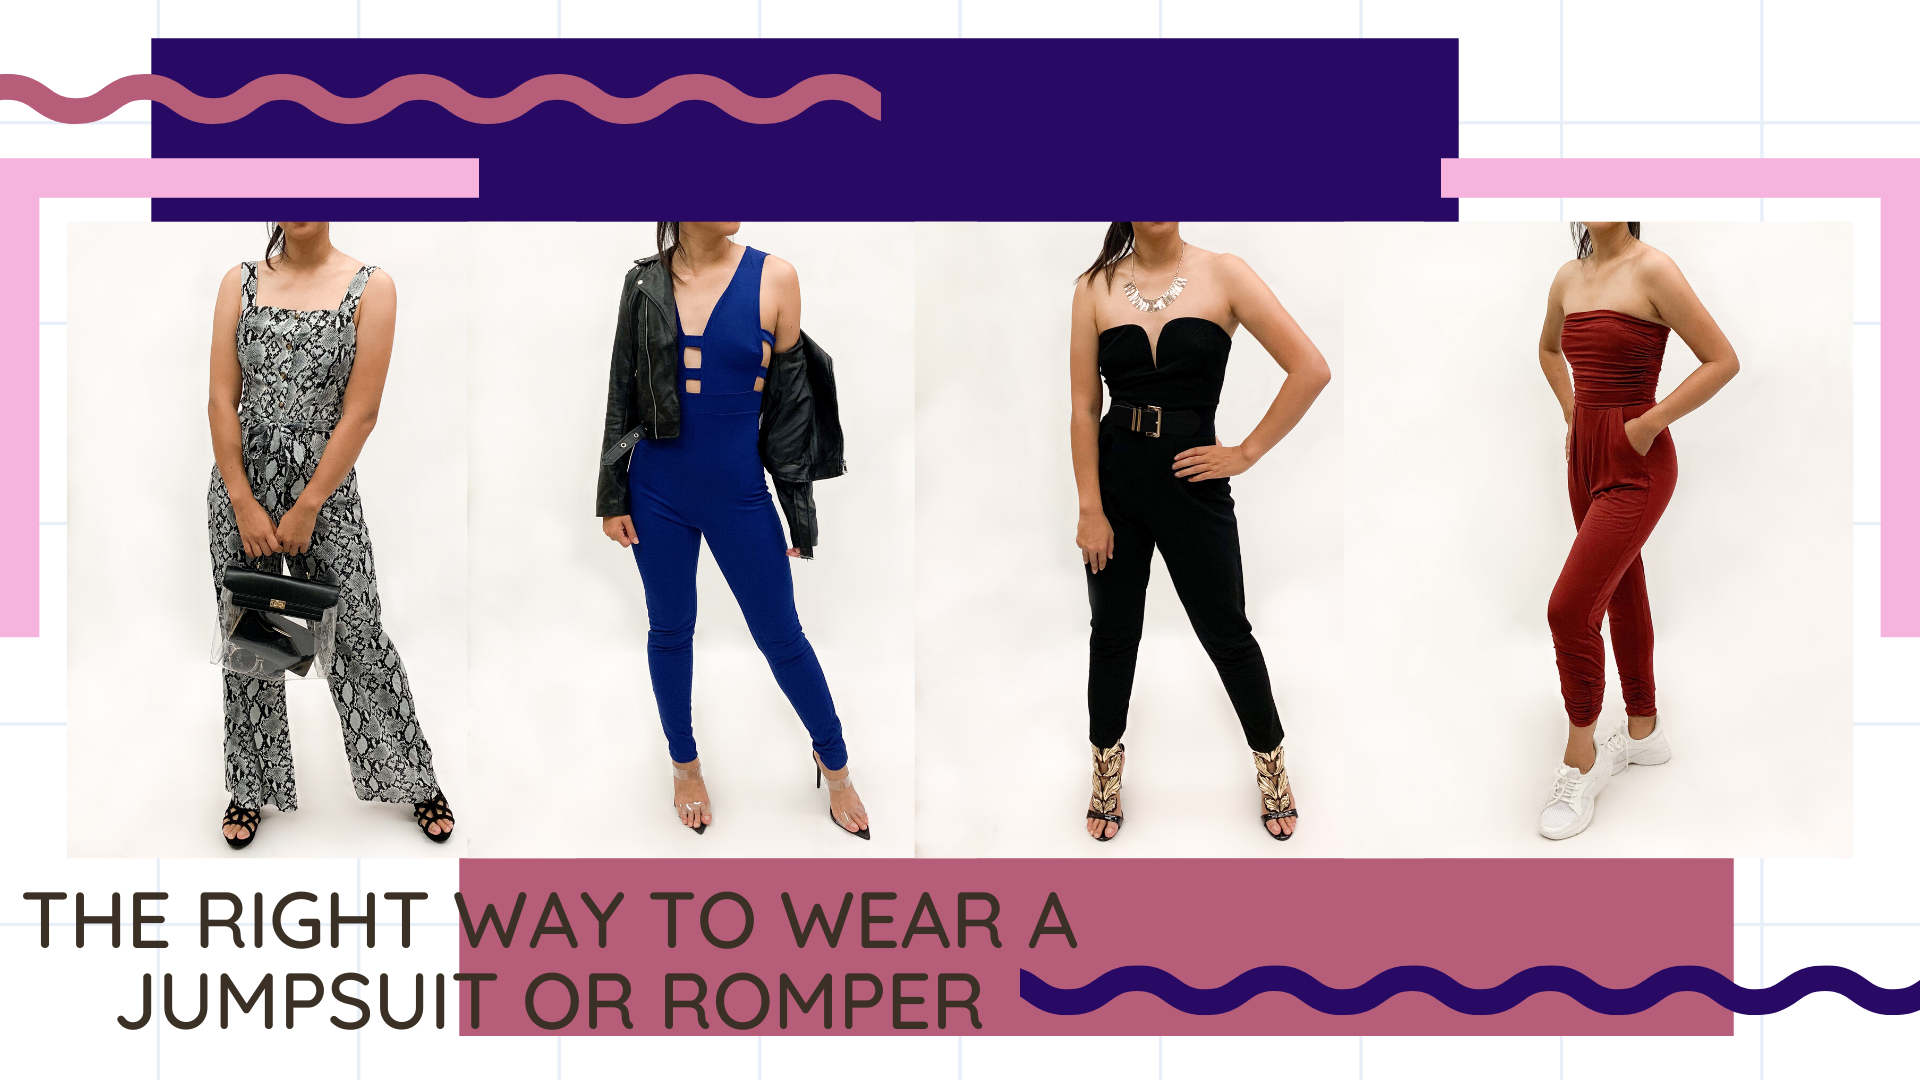 The Right Way to Wear a Jumpsuit or Romper